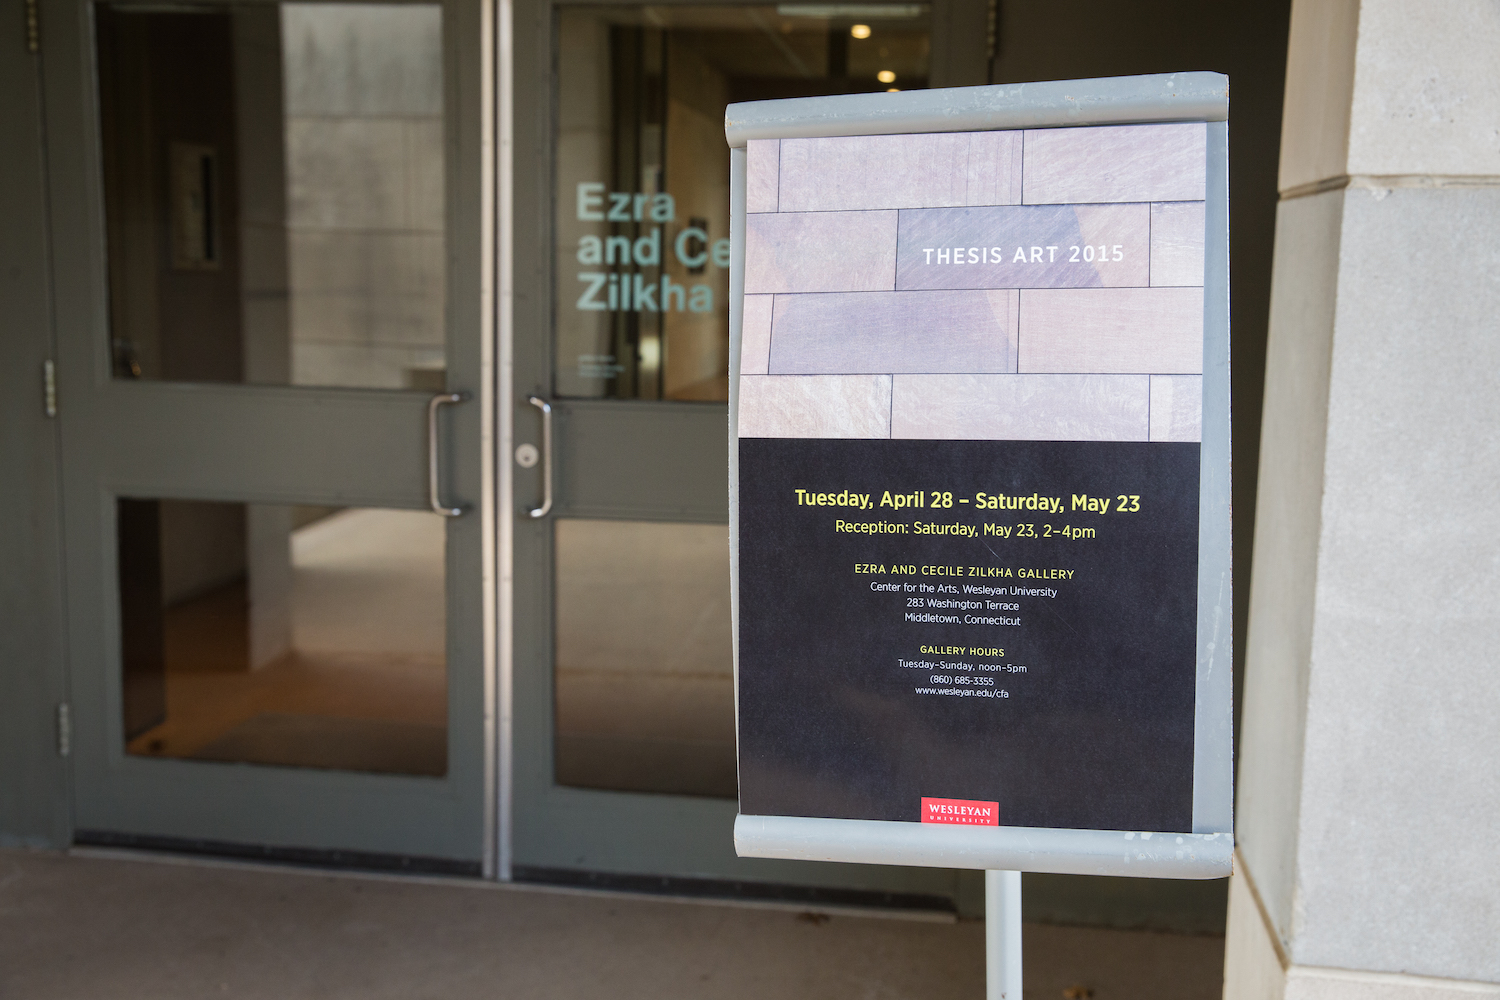 The 2015 Senior Thesis Exhibition was on display at the Ezra and Cecile Zilkha Gallery in April and May.